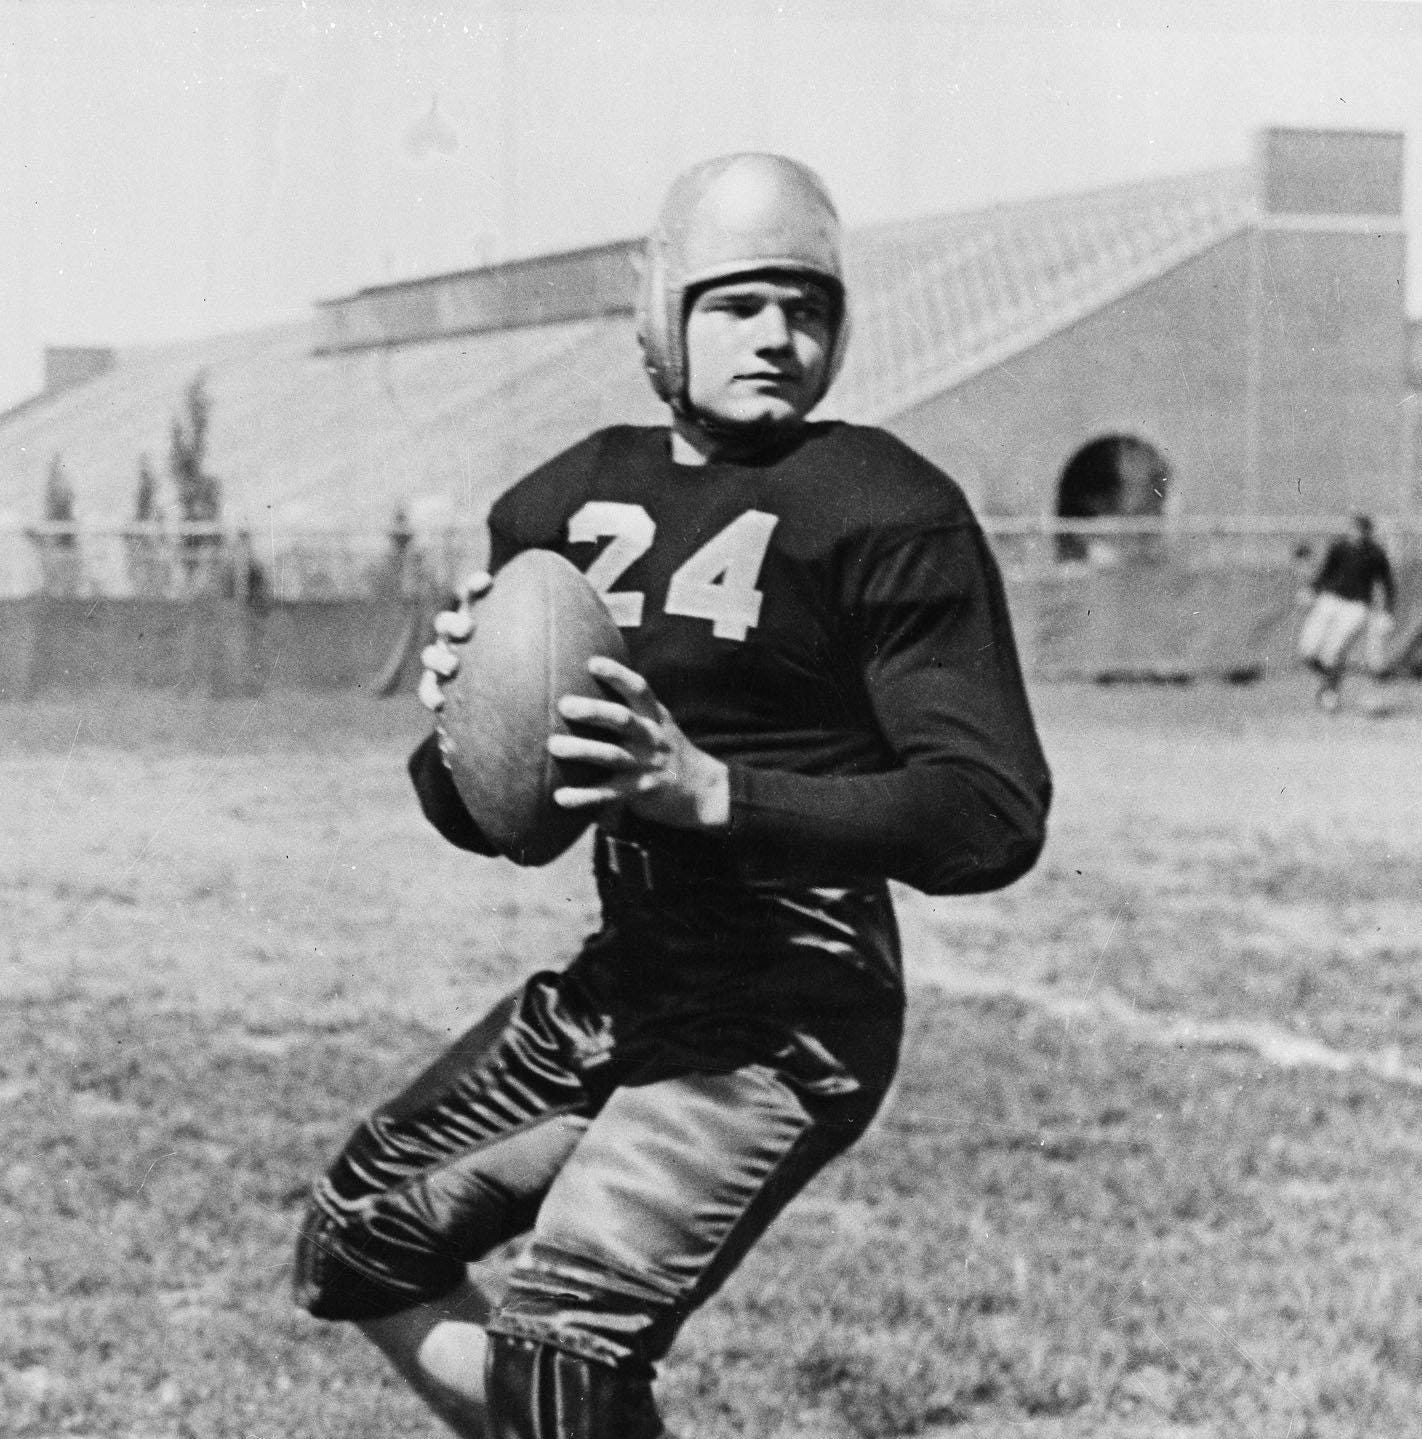 Nile Kinnick movie plans to film in Iowa City, host premiere at Kinnick Stadium